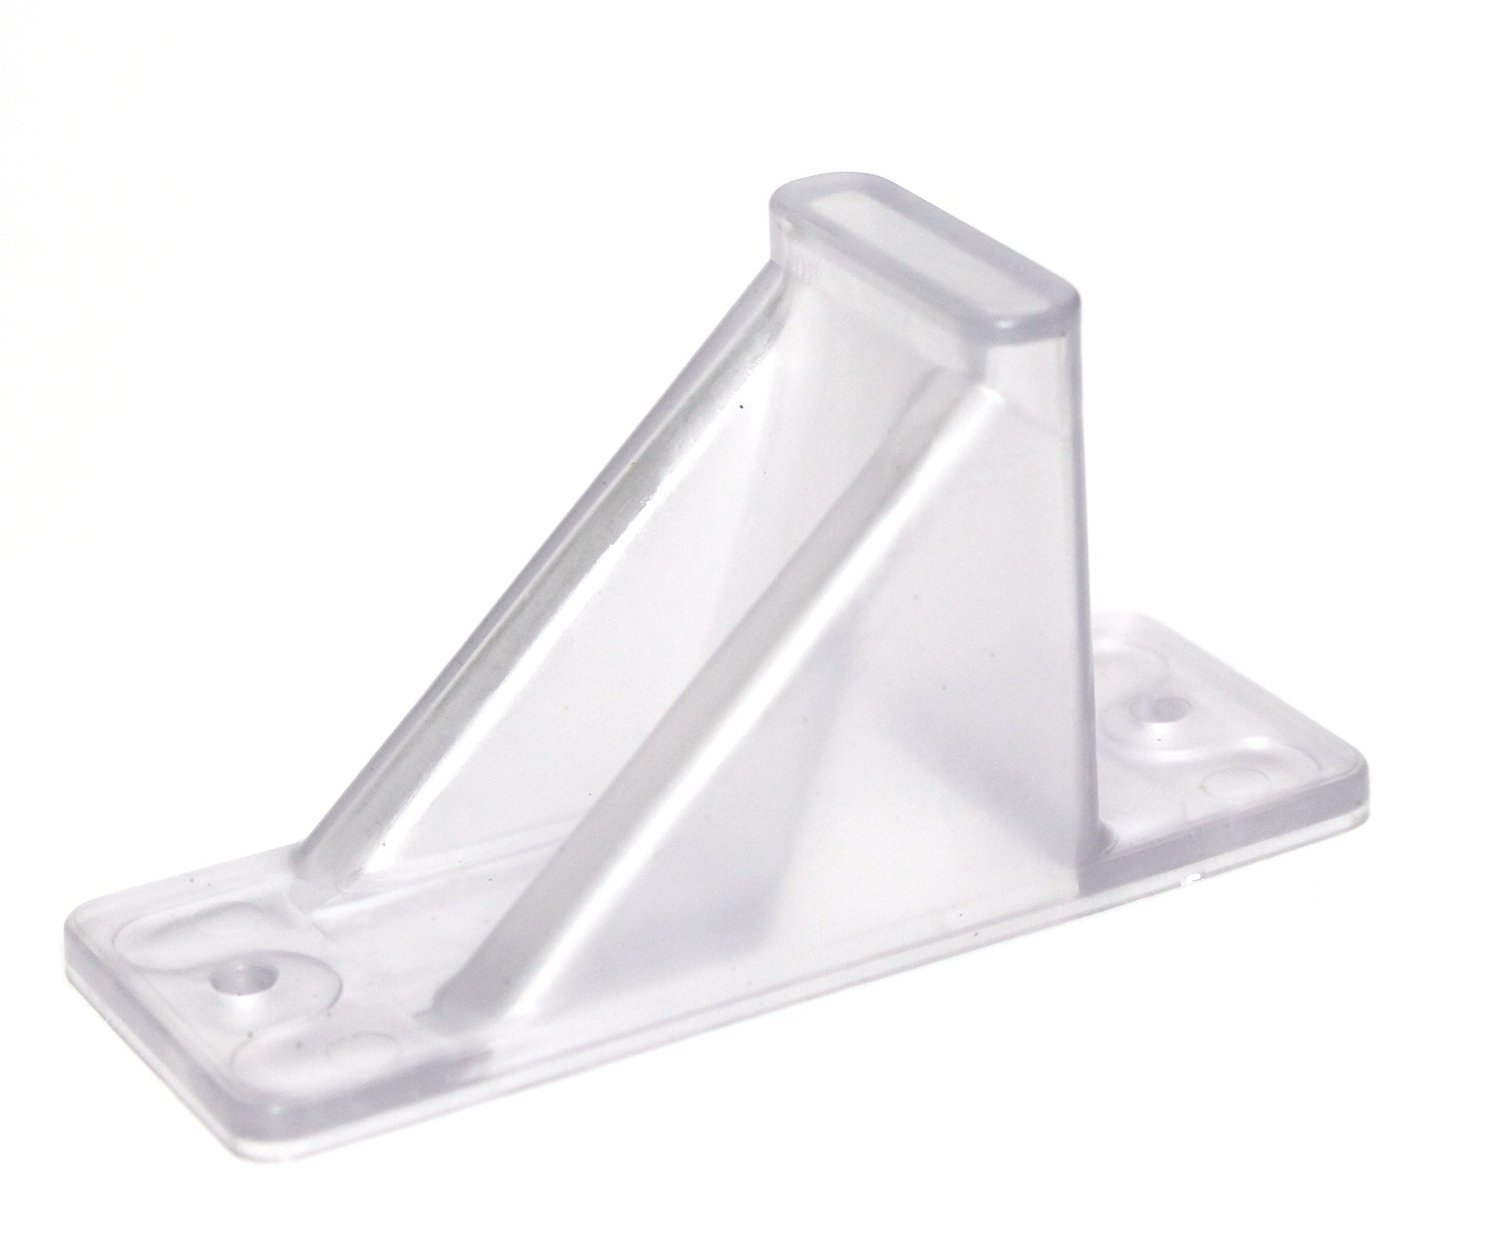 Plastic Roof Ice Guard Mini Snow Guard (100 Pack)Prevent Sliding Snow Ice Buildup-Acrylic